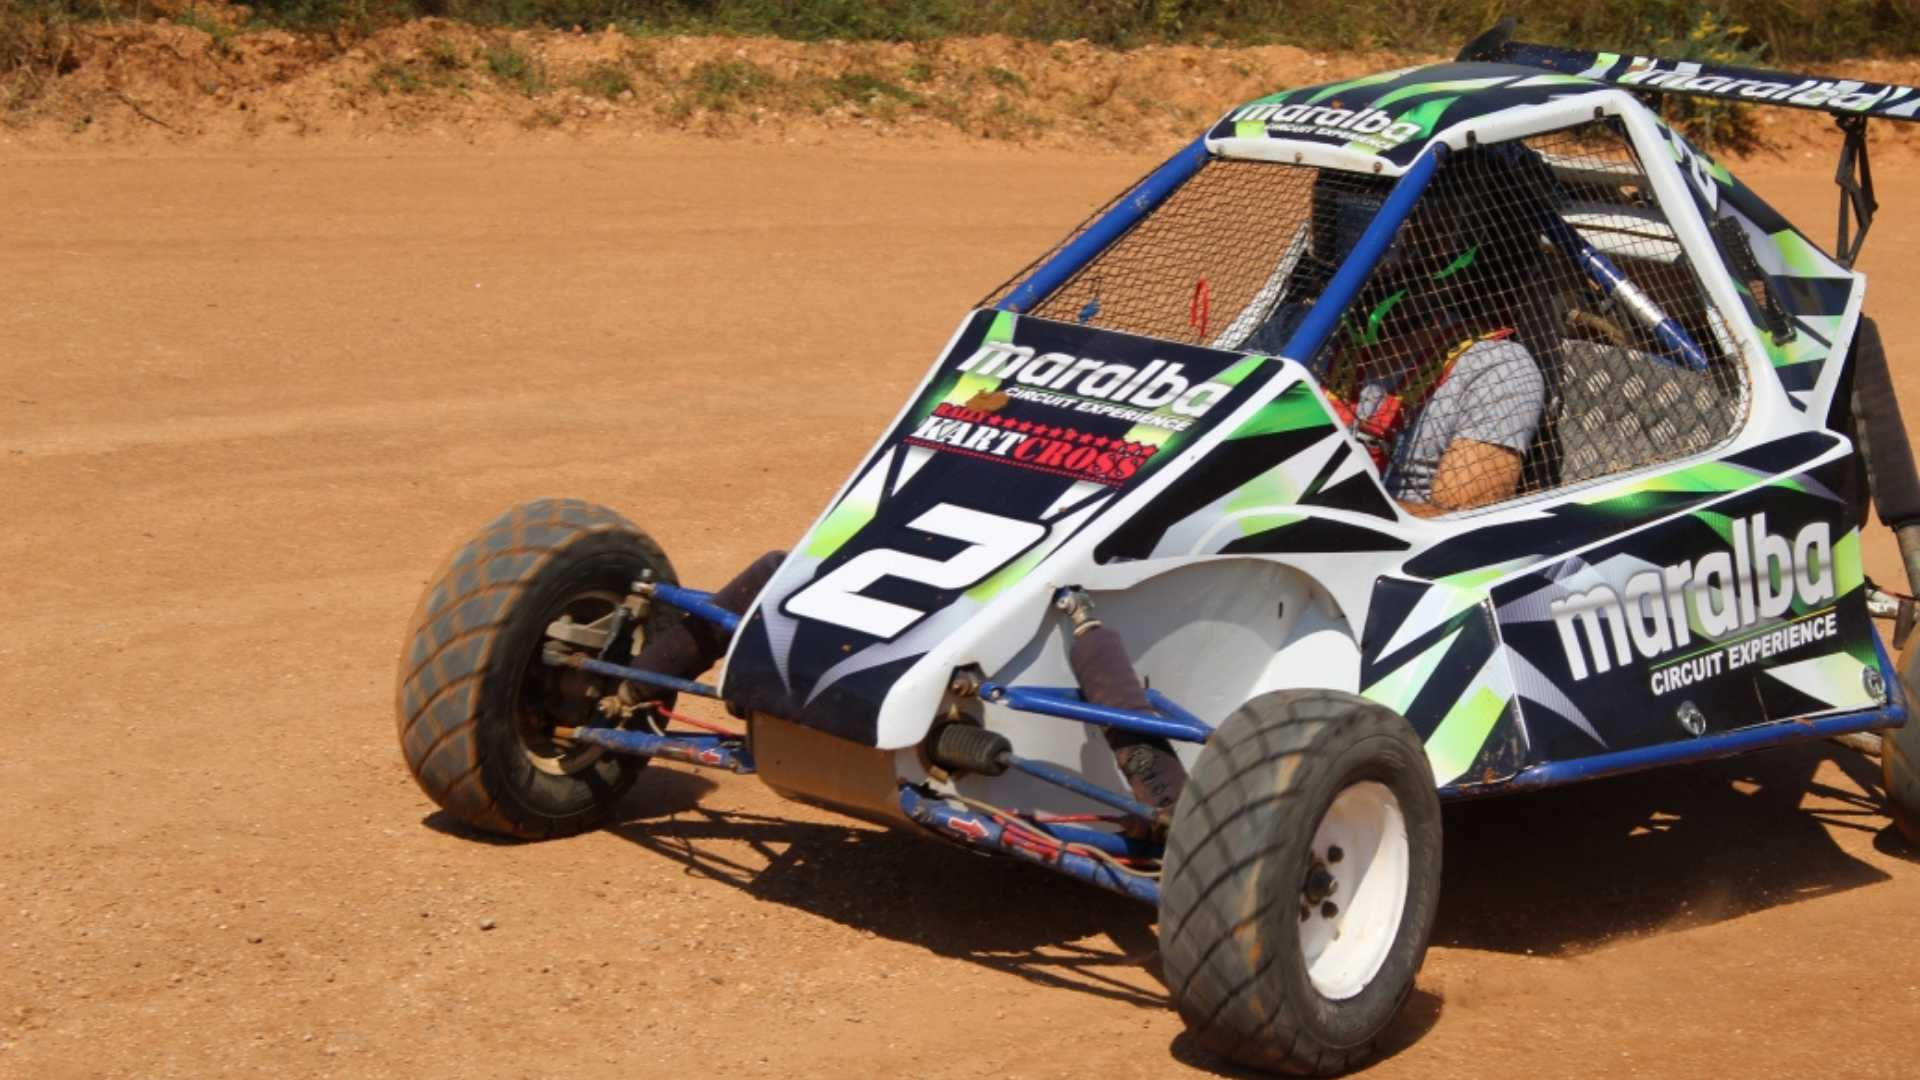 RALLY KART CROSS